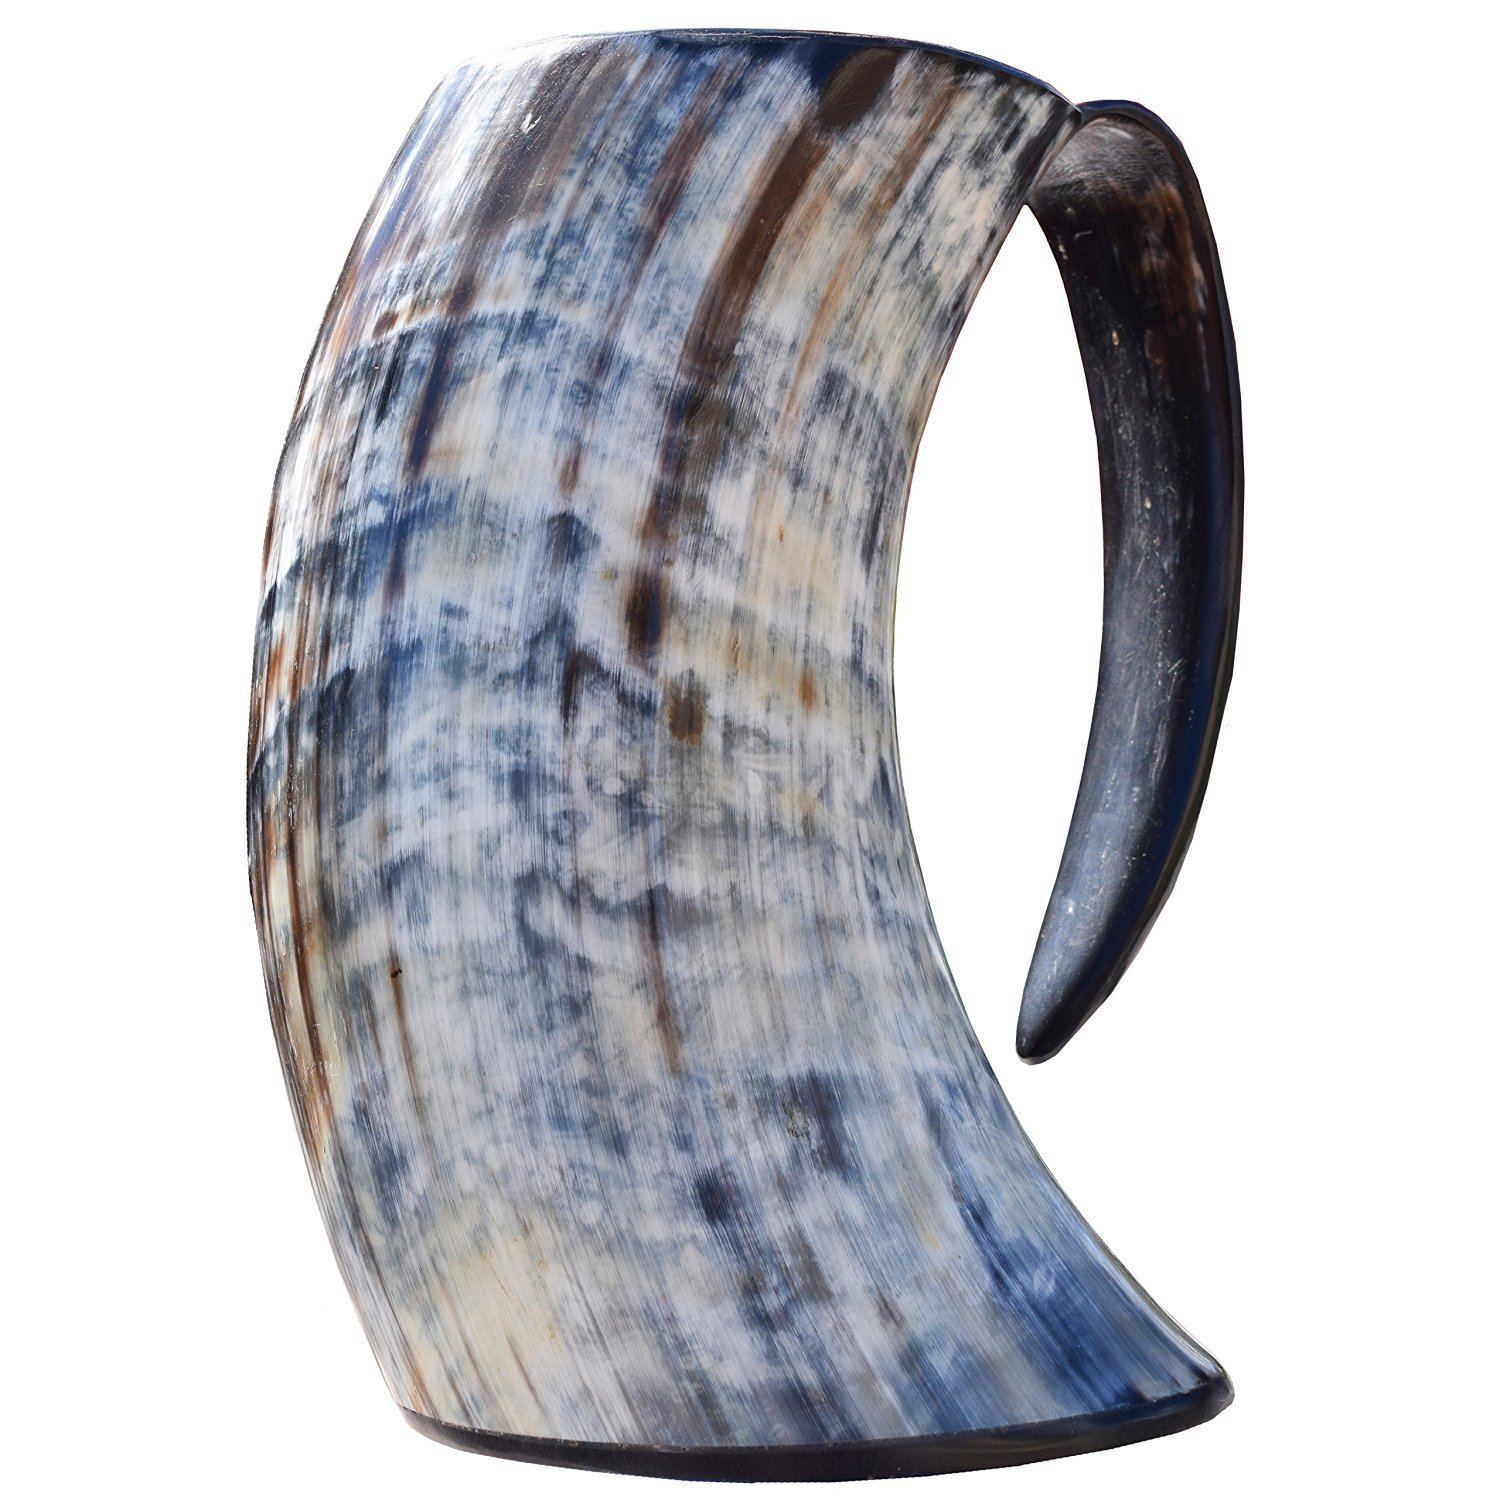 HornBrew Viking Cup Drinking Horn Tankard - Made with 100% Real Ox Horn (28oz)